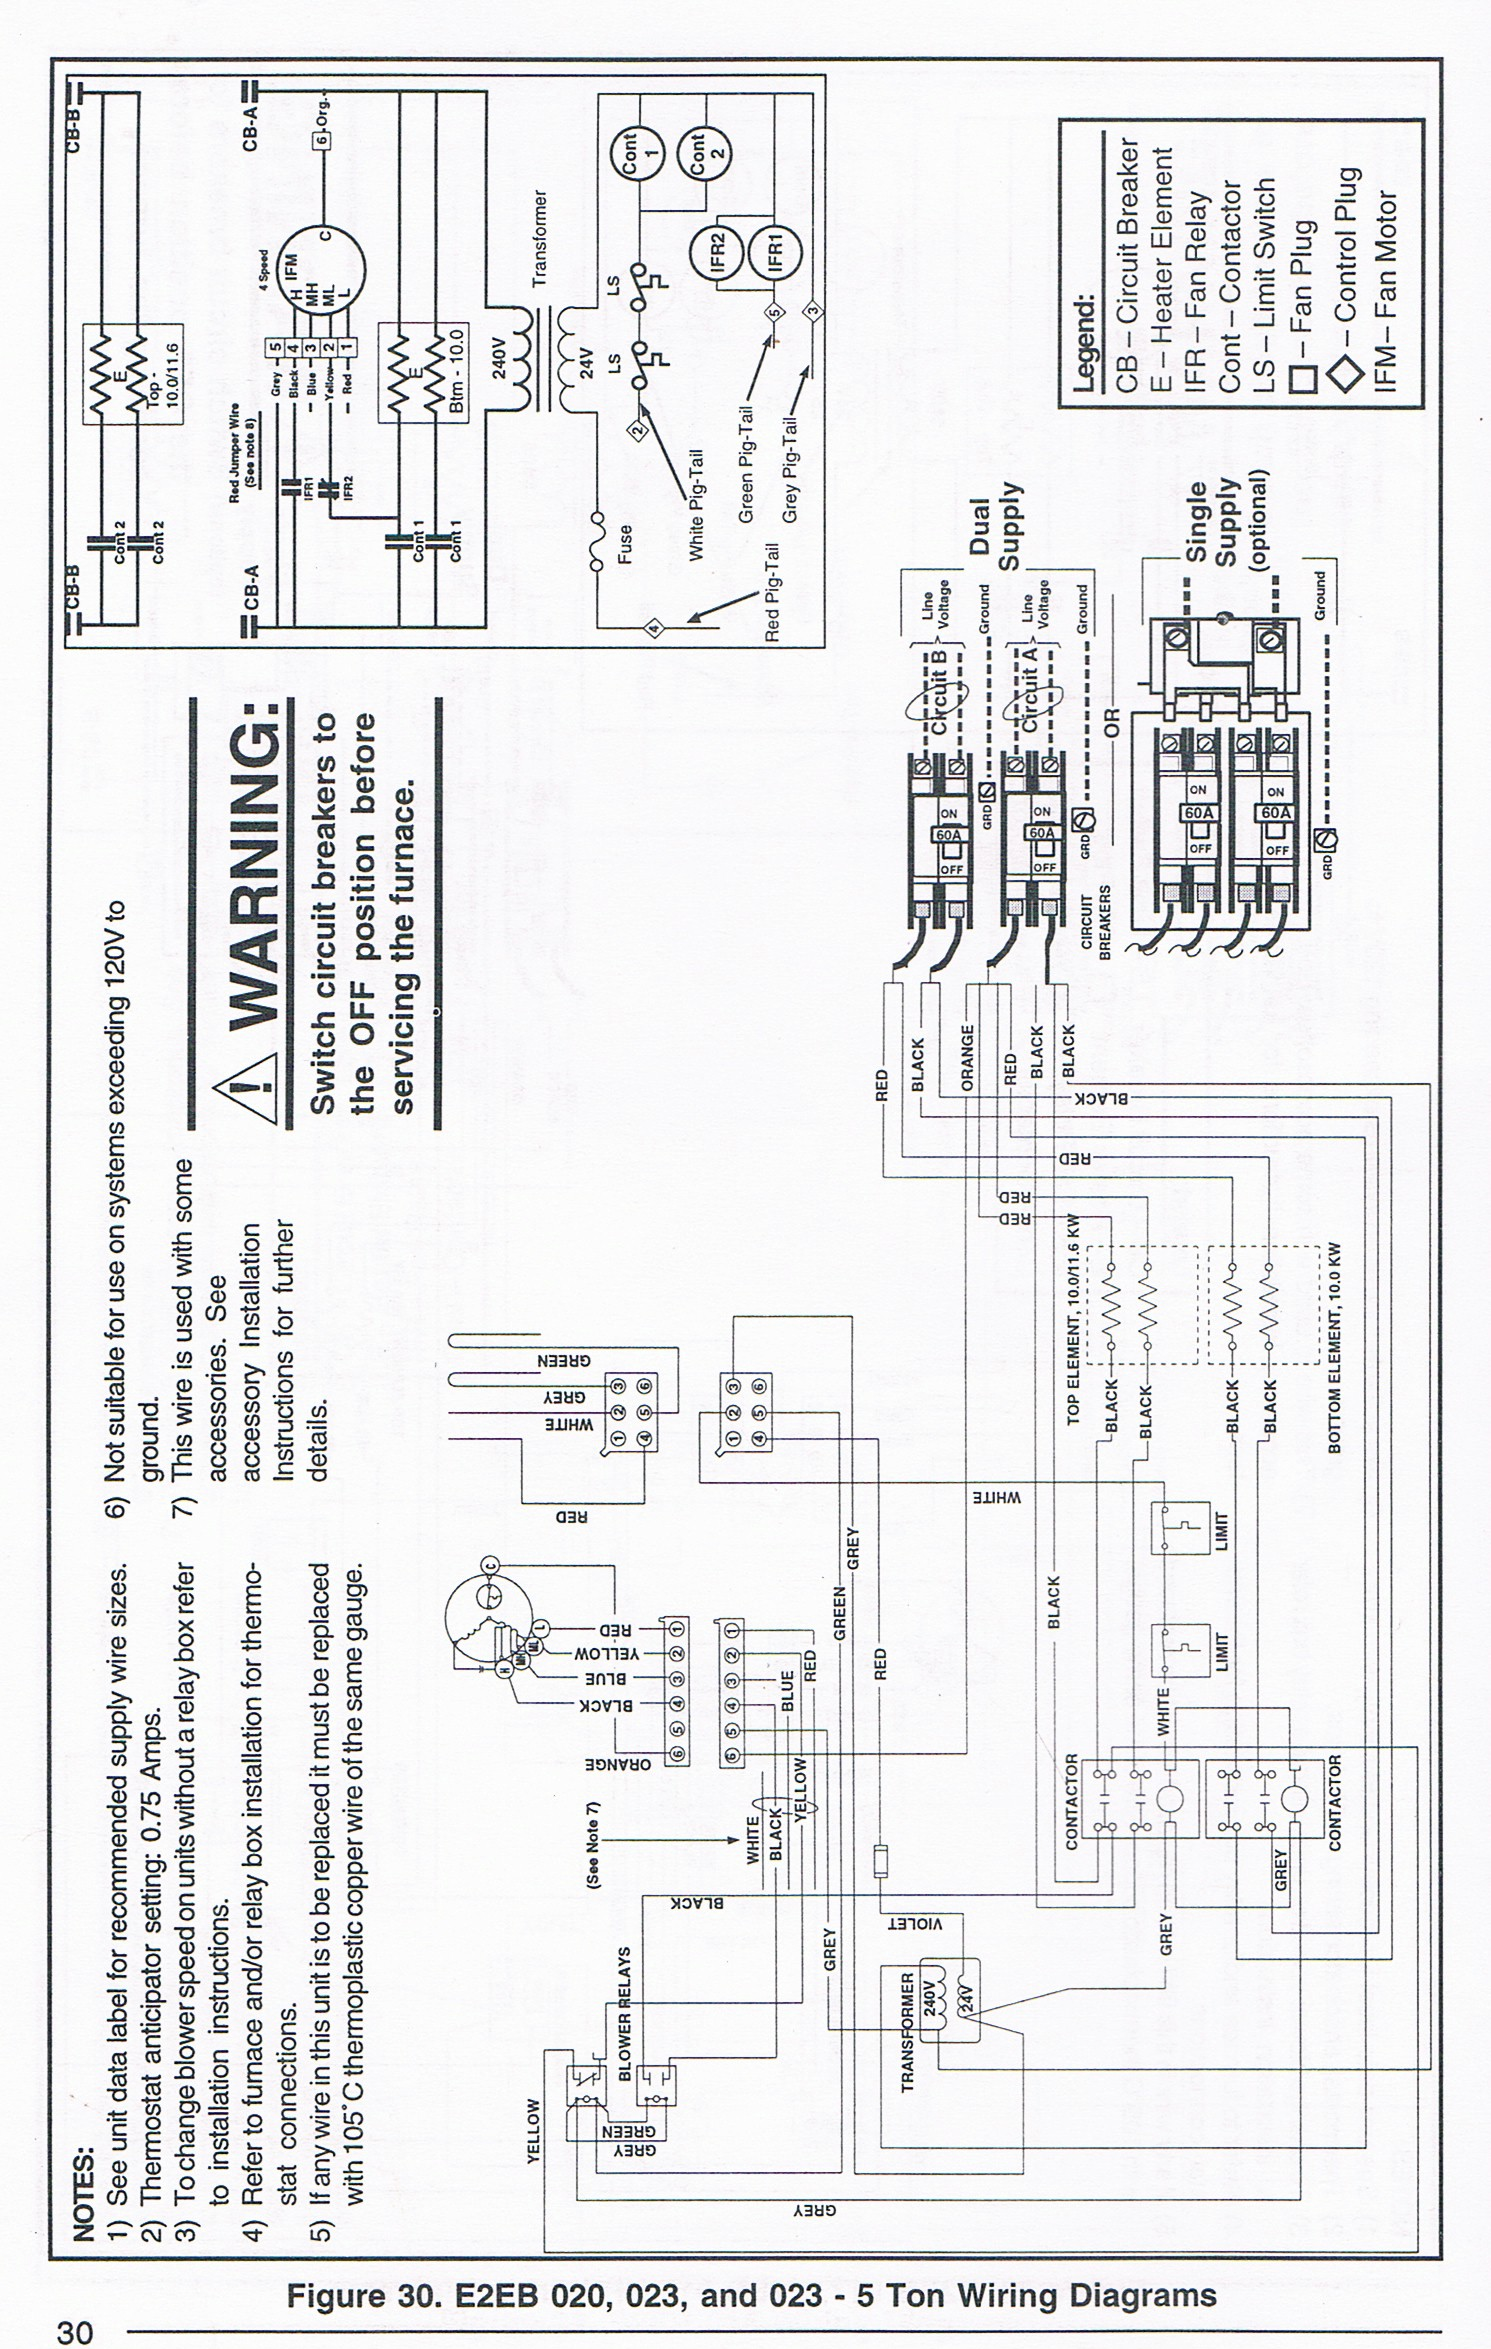 nordyne contactor wiring diagram i have a nordyne e2eb 5 ton blower and the motor went out. old nordyne furnaces wiring diagram image #15